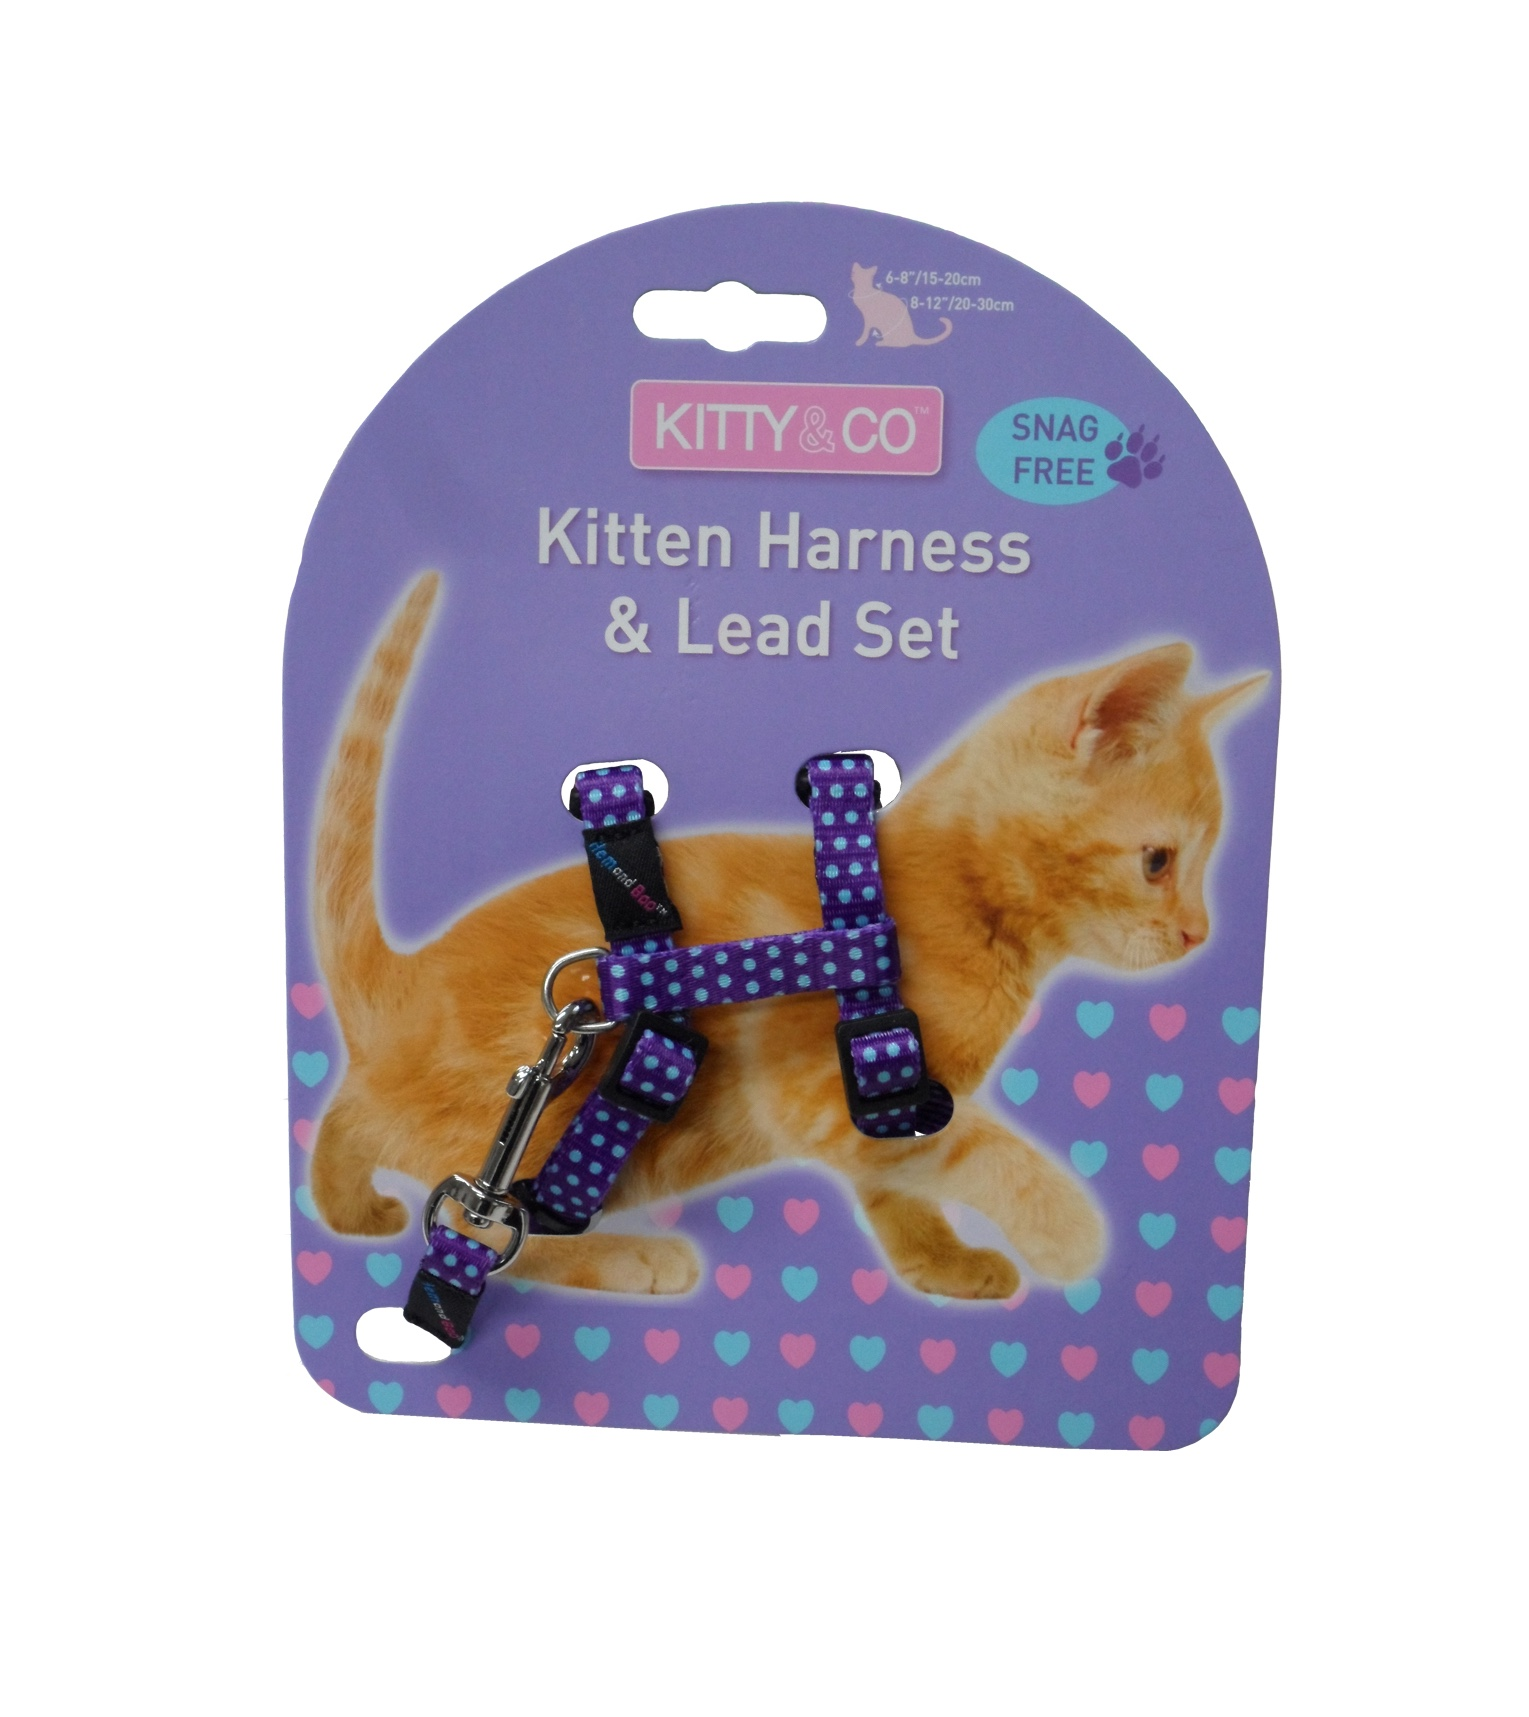 Kitty & Co Purple Spotty Kitten Harness & Lead Set